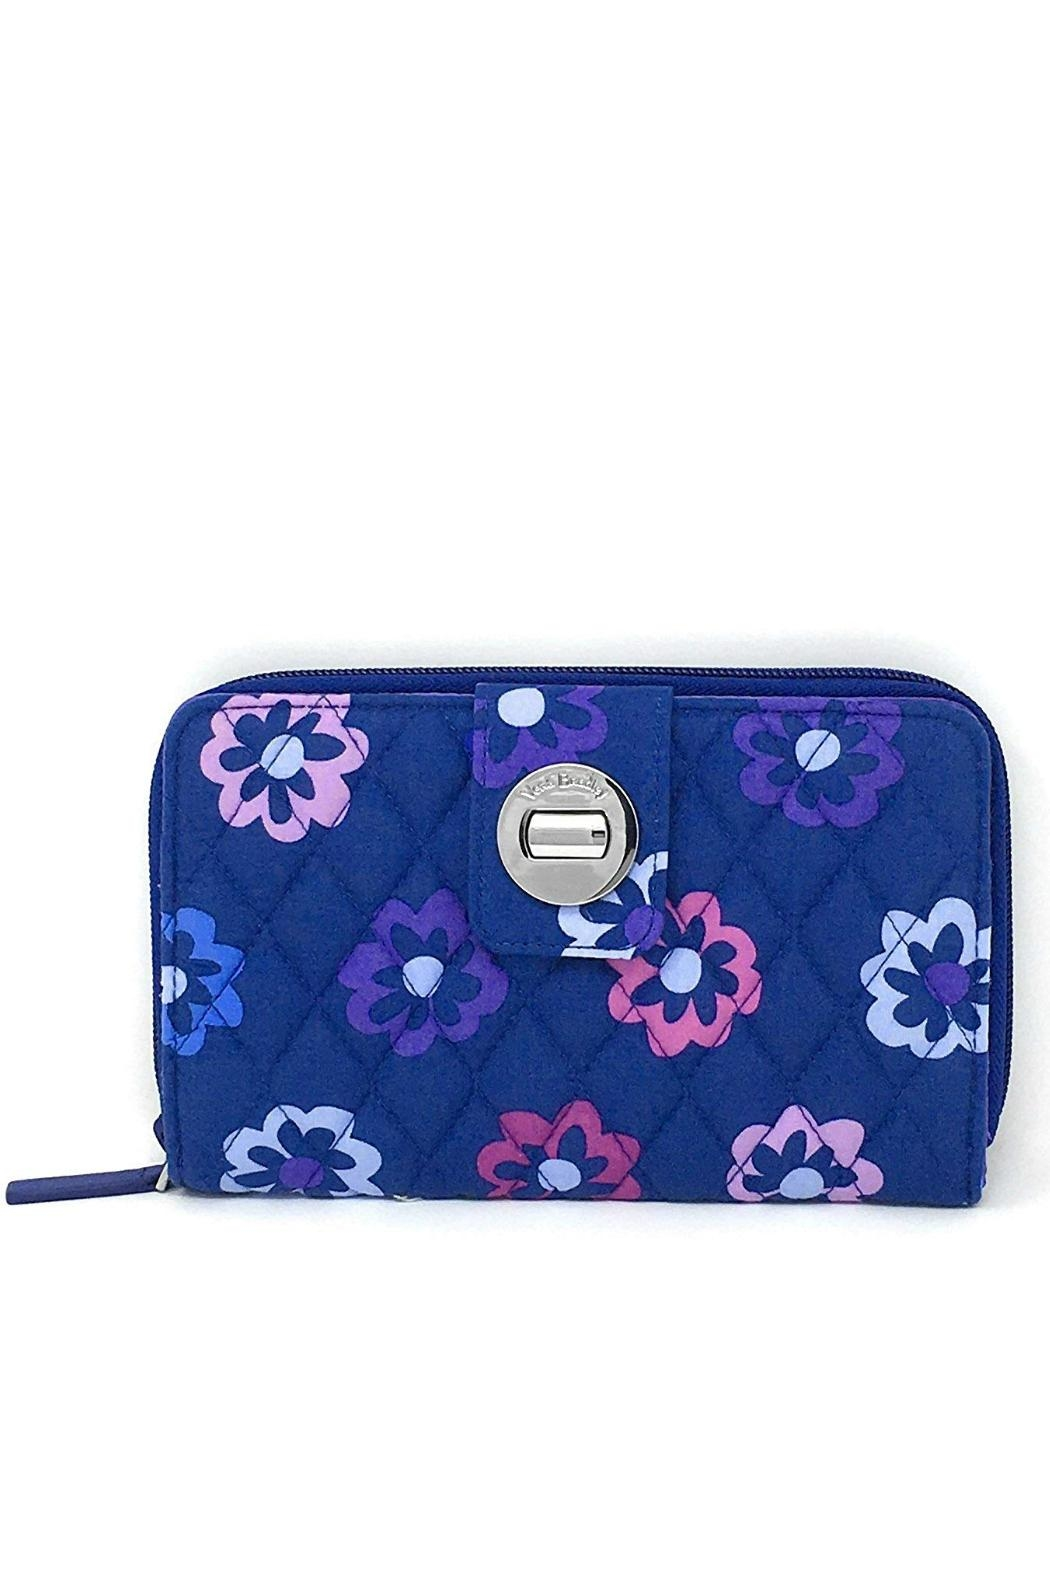 06226eb79a Vera Bradley Ellie Flowers Turnlock from Kentucky by Mimi s Gift ...